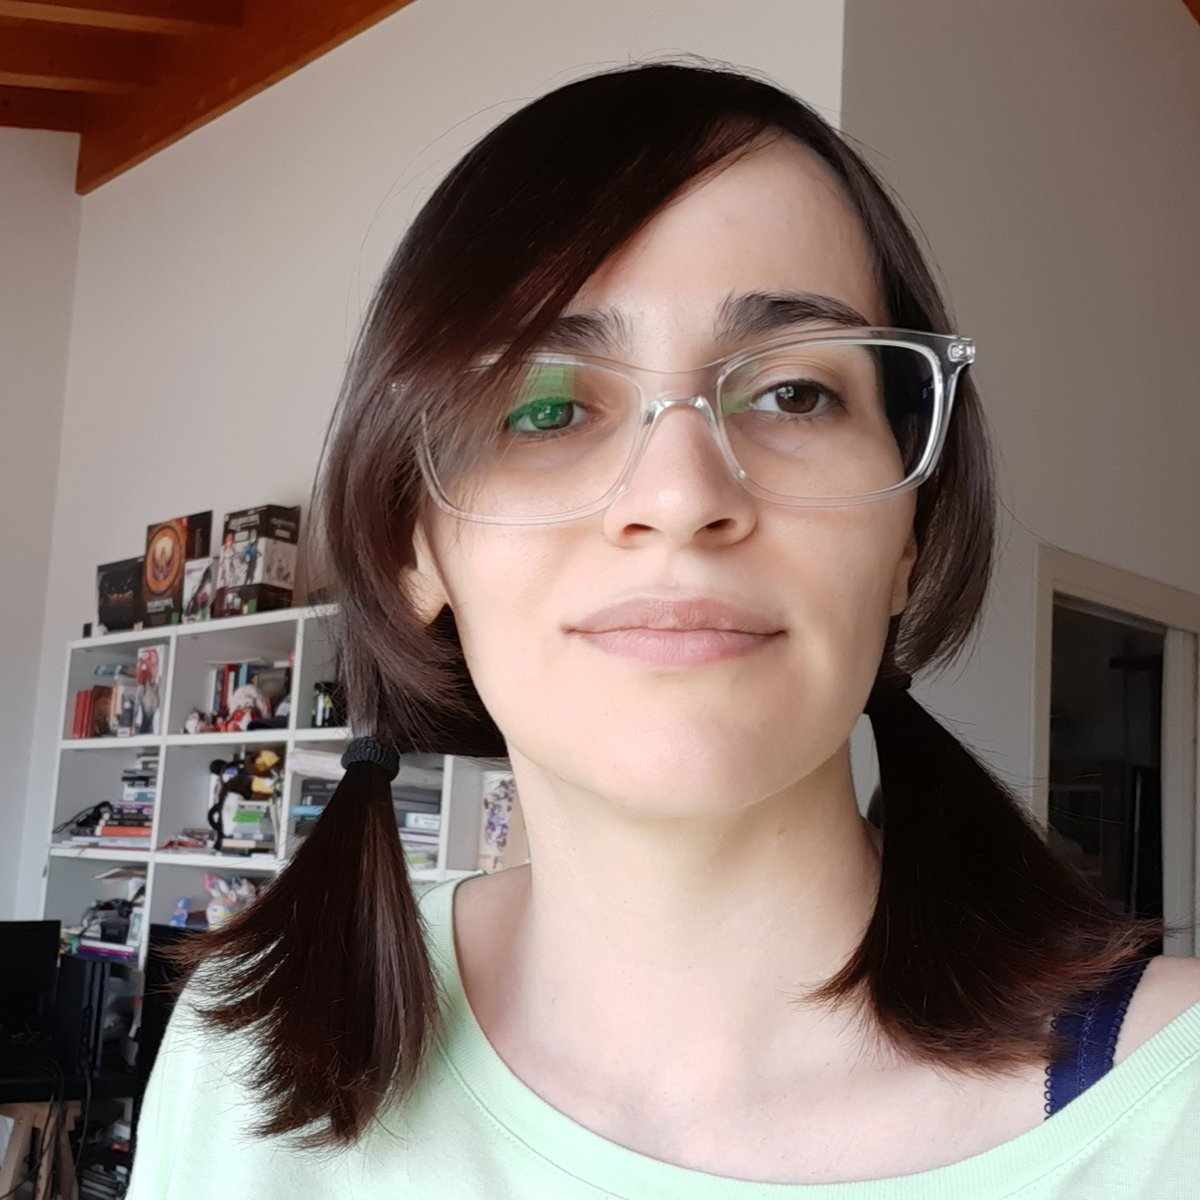 Neneko Colors A Twitter Between Mess And Covid I Have Not Seen A Hairdresser Since Last November But In This Way At Least I Stopped Cutting My Hair Too Short And I